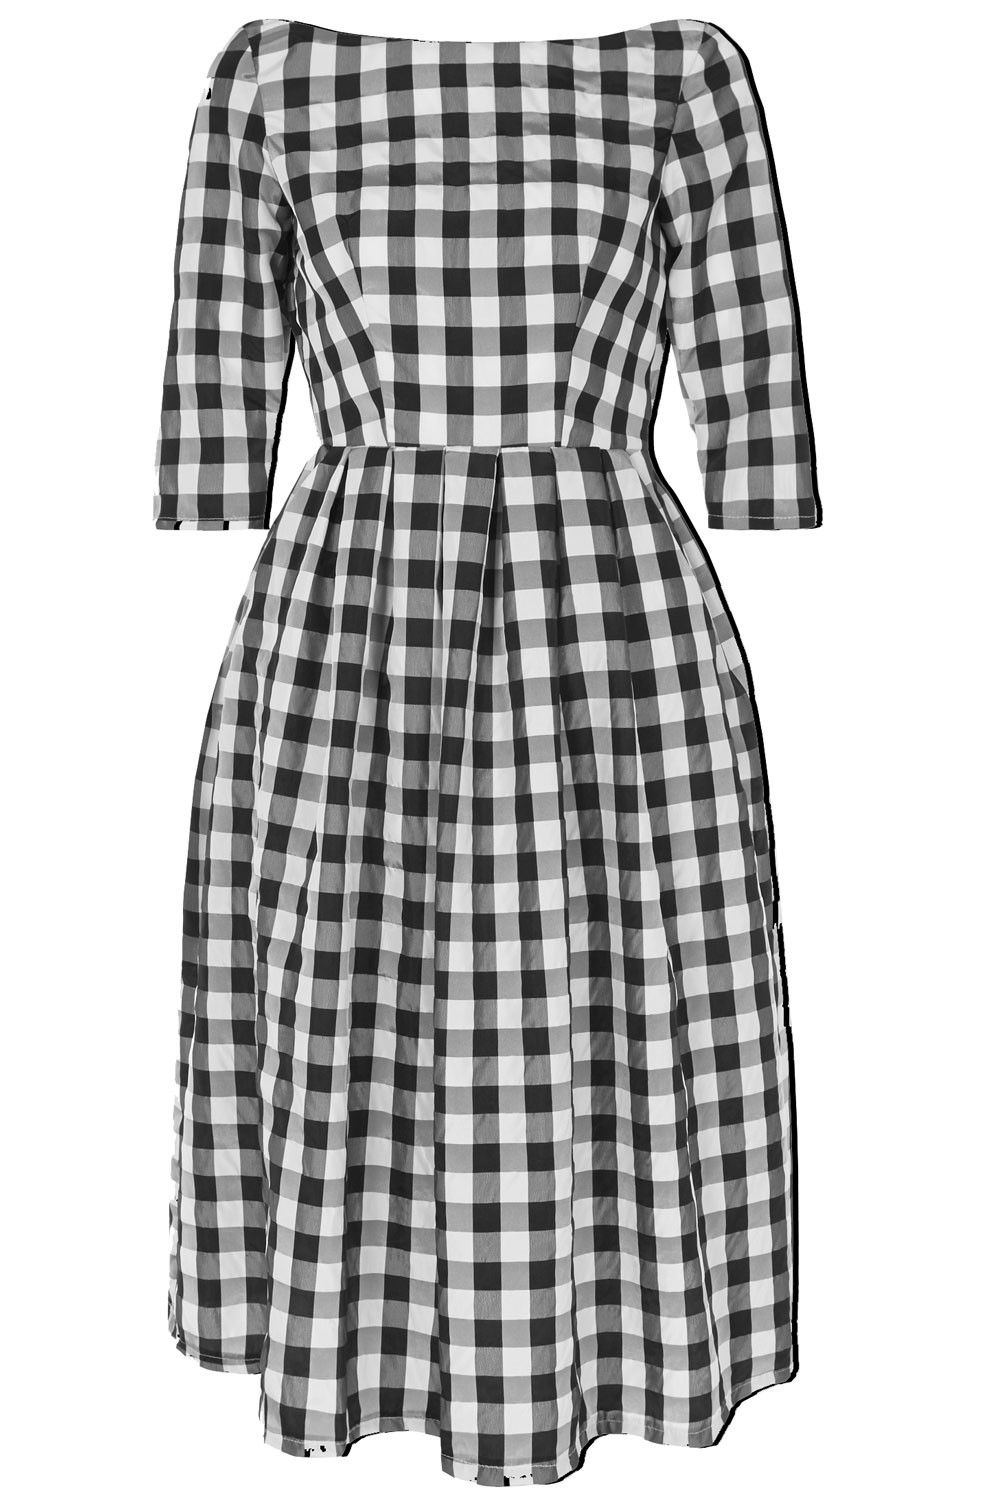 The checked marina dress black and white adorn pinterest